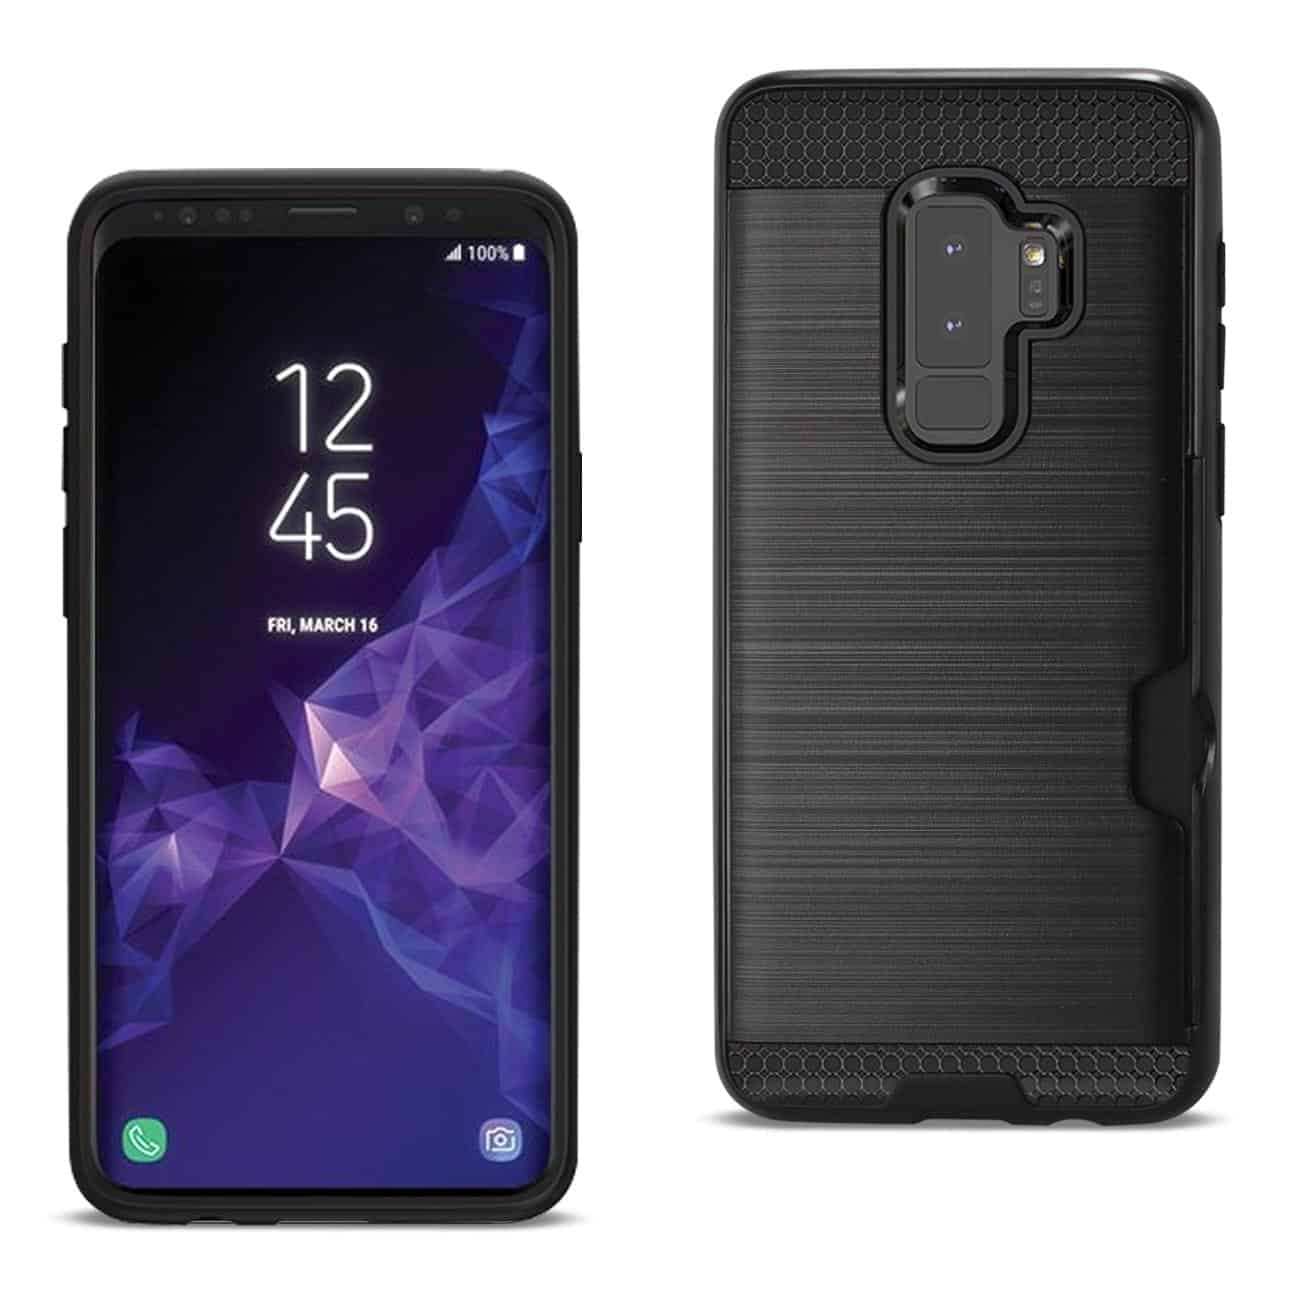 Samsung Galaxy S9 Plus Slim Armor Hybrid Case With Card Holder In Black